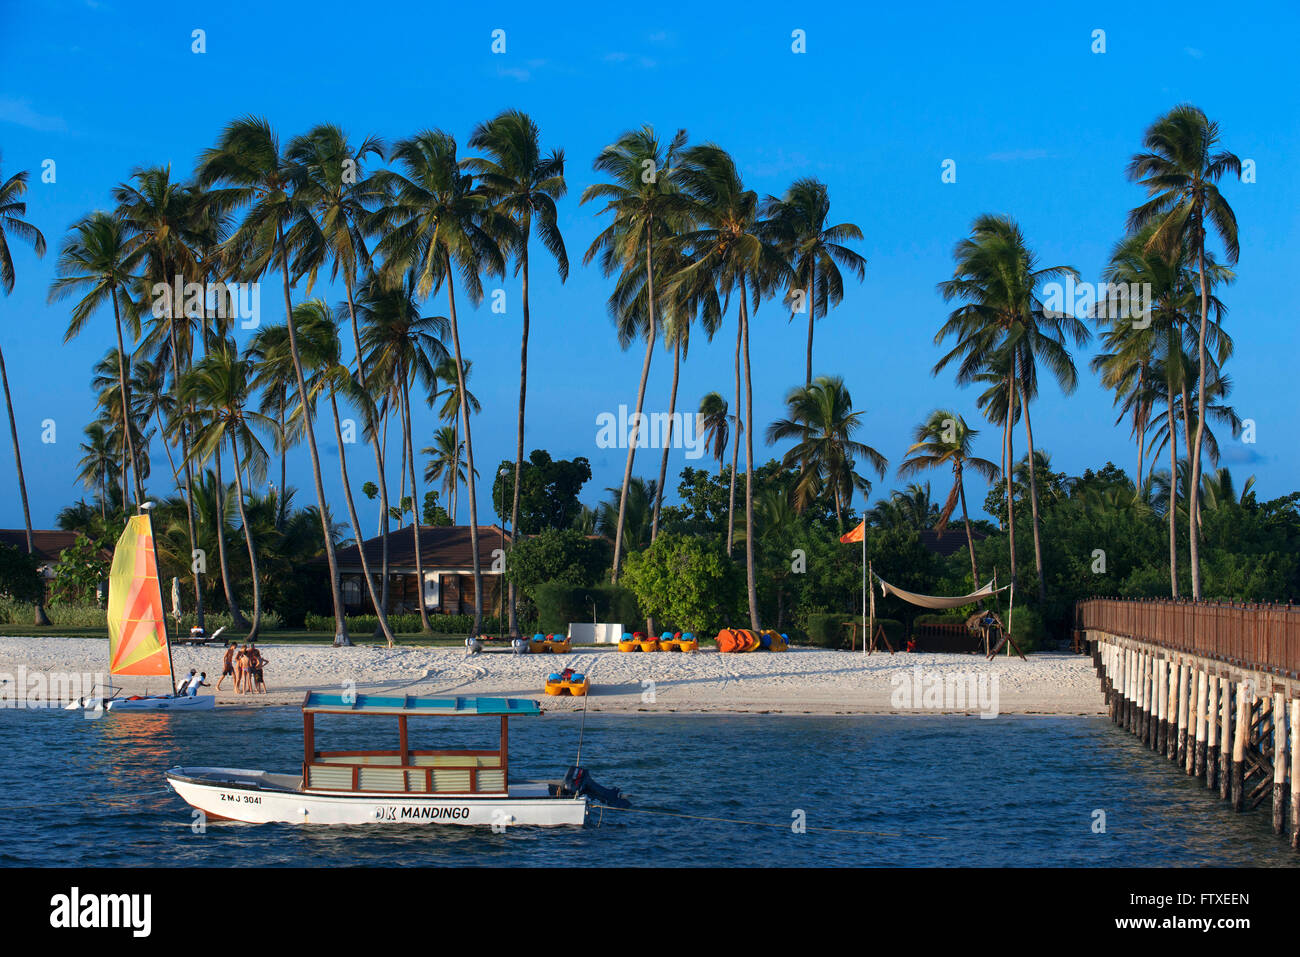 White sandy beach and jetty for the activities below palm trees in front of The Residence Hotel at the Indian Ocean - Stock Image